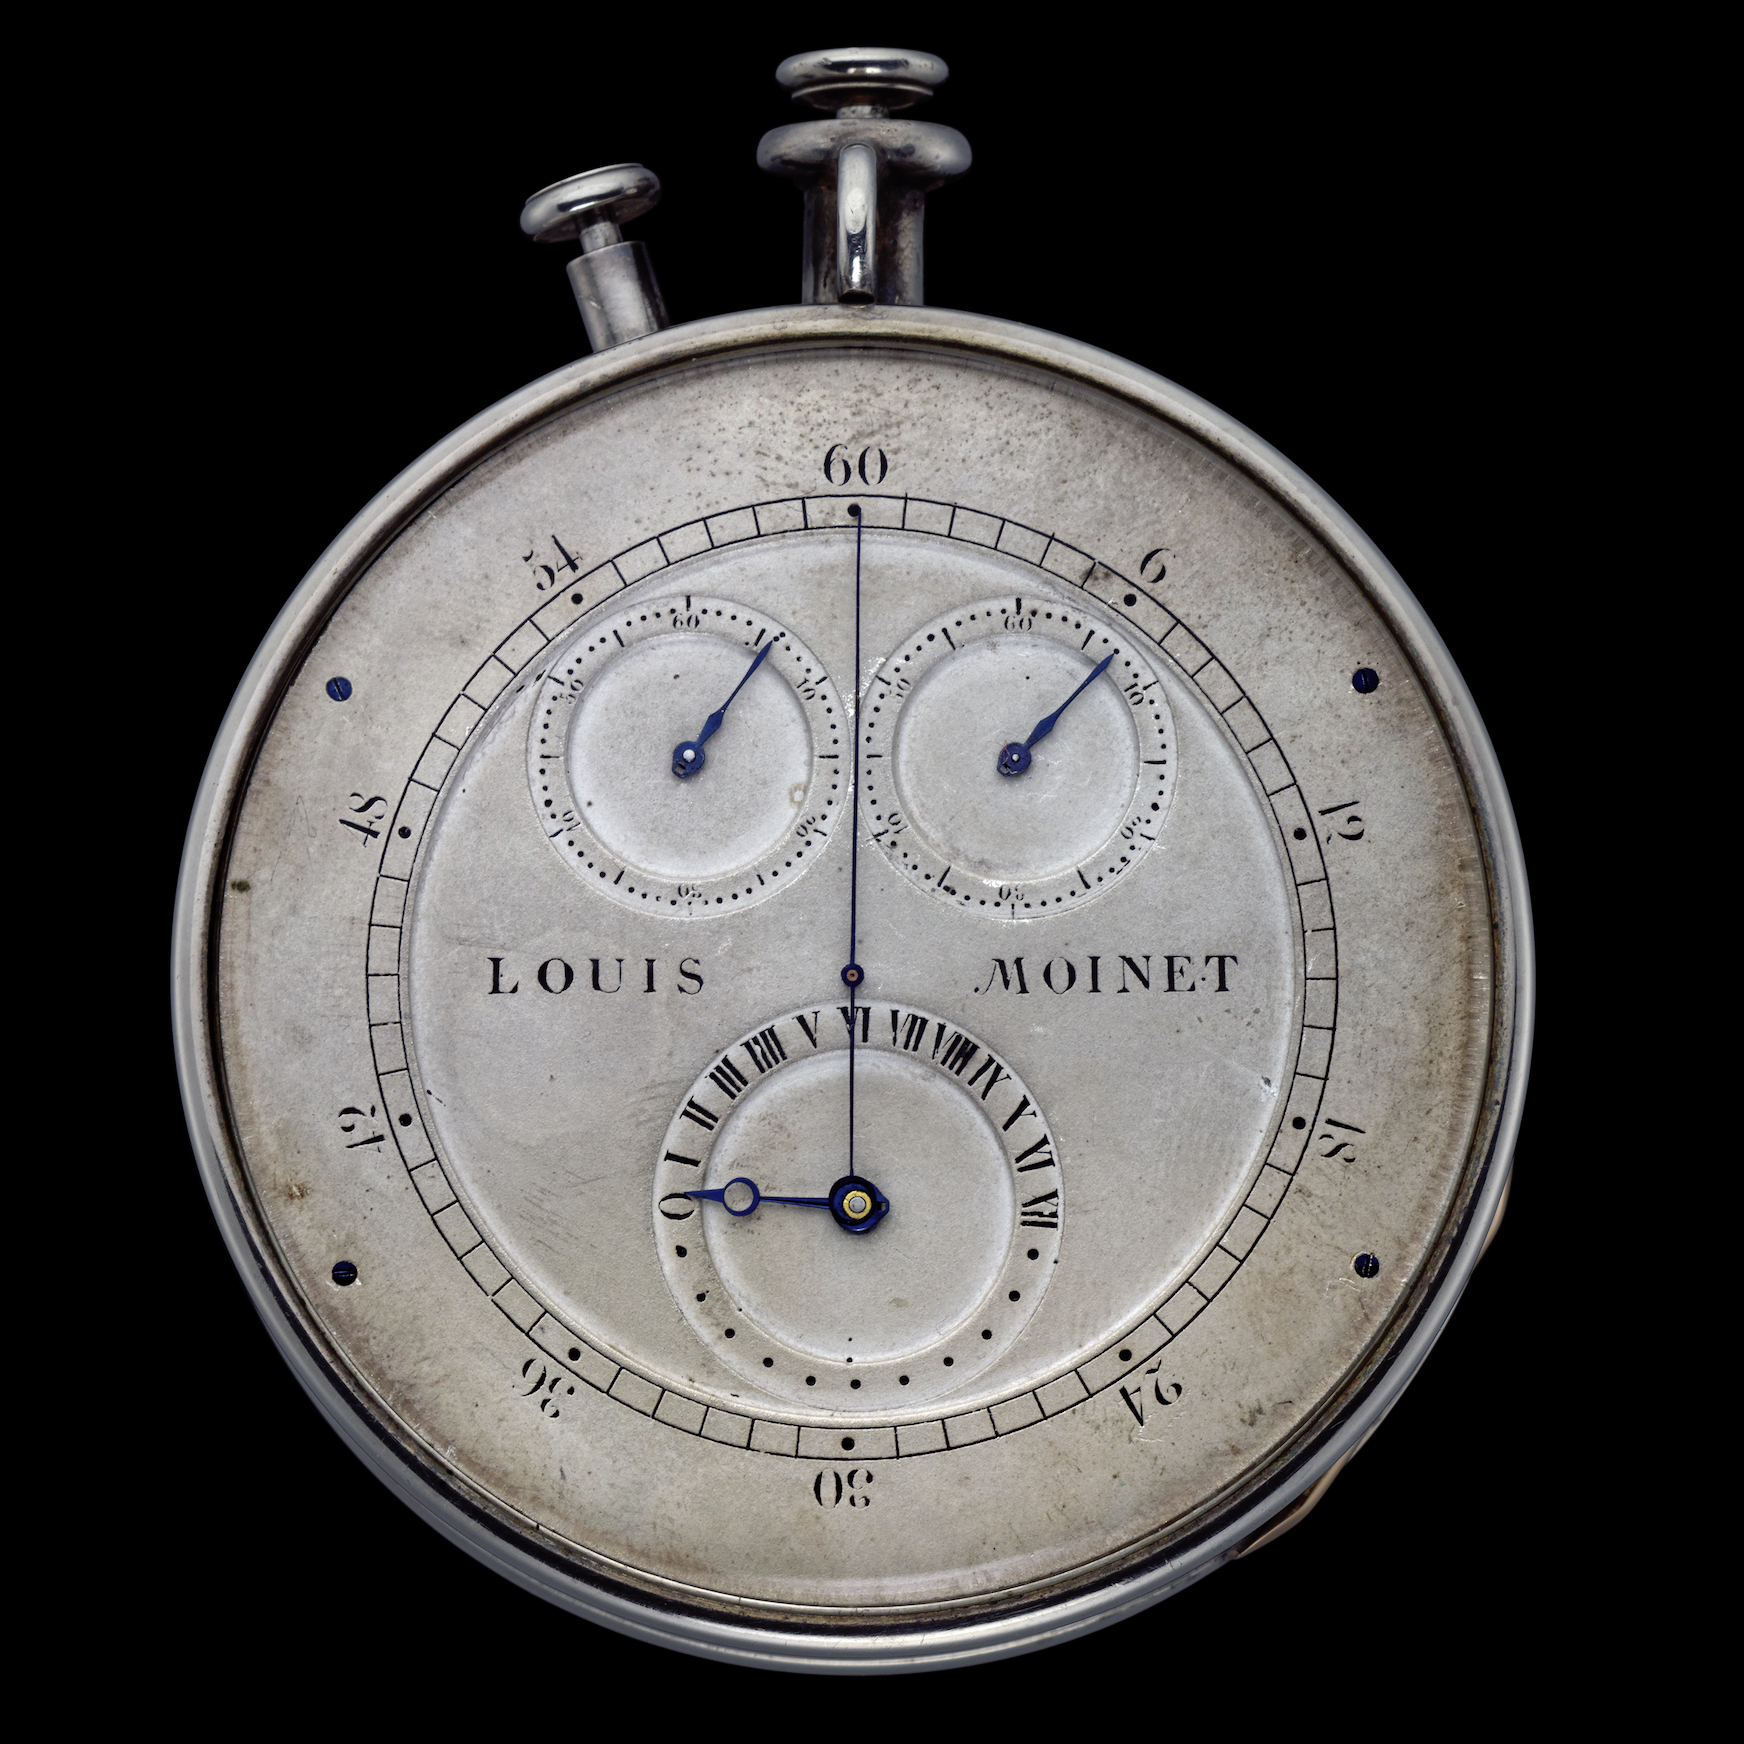 Louis Moinet invented the chronograph in 1816.